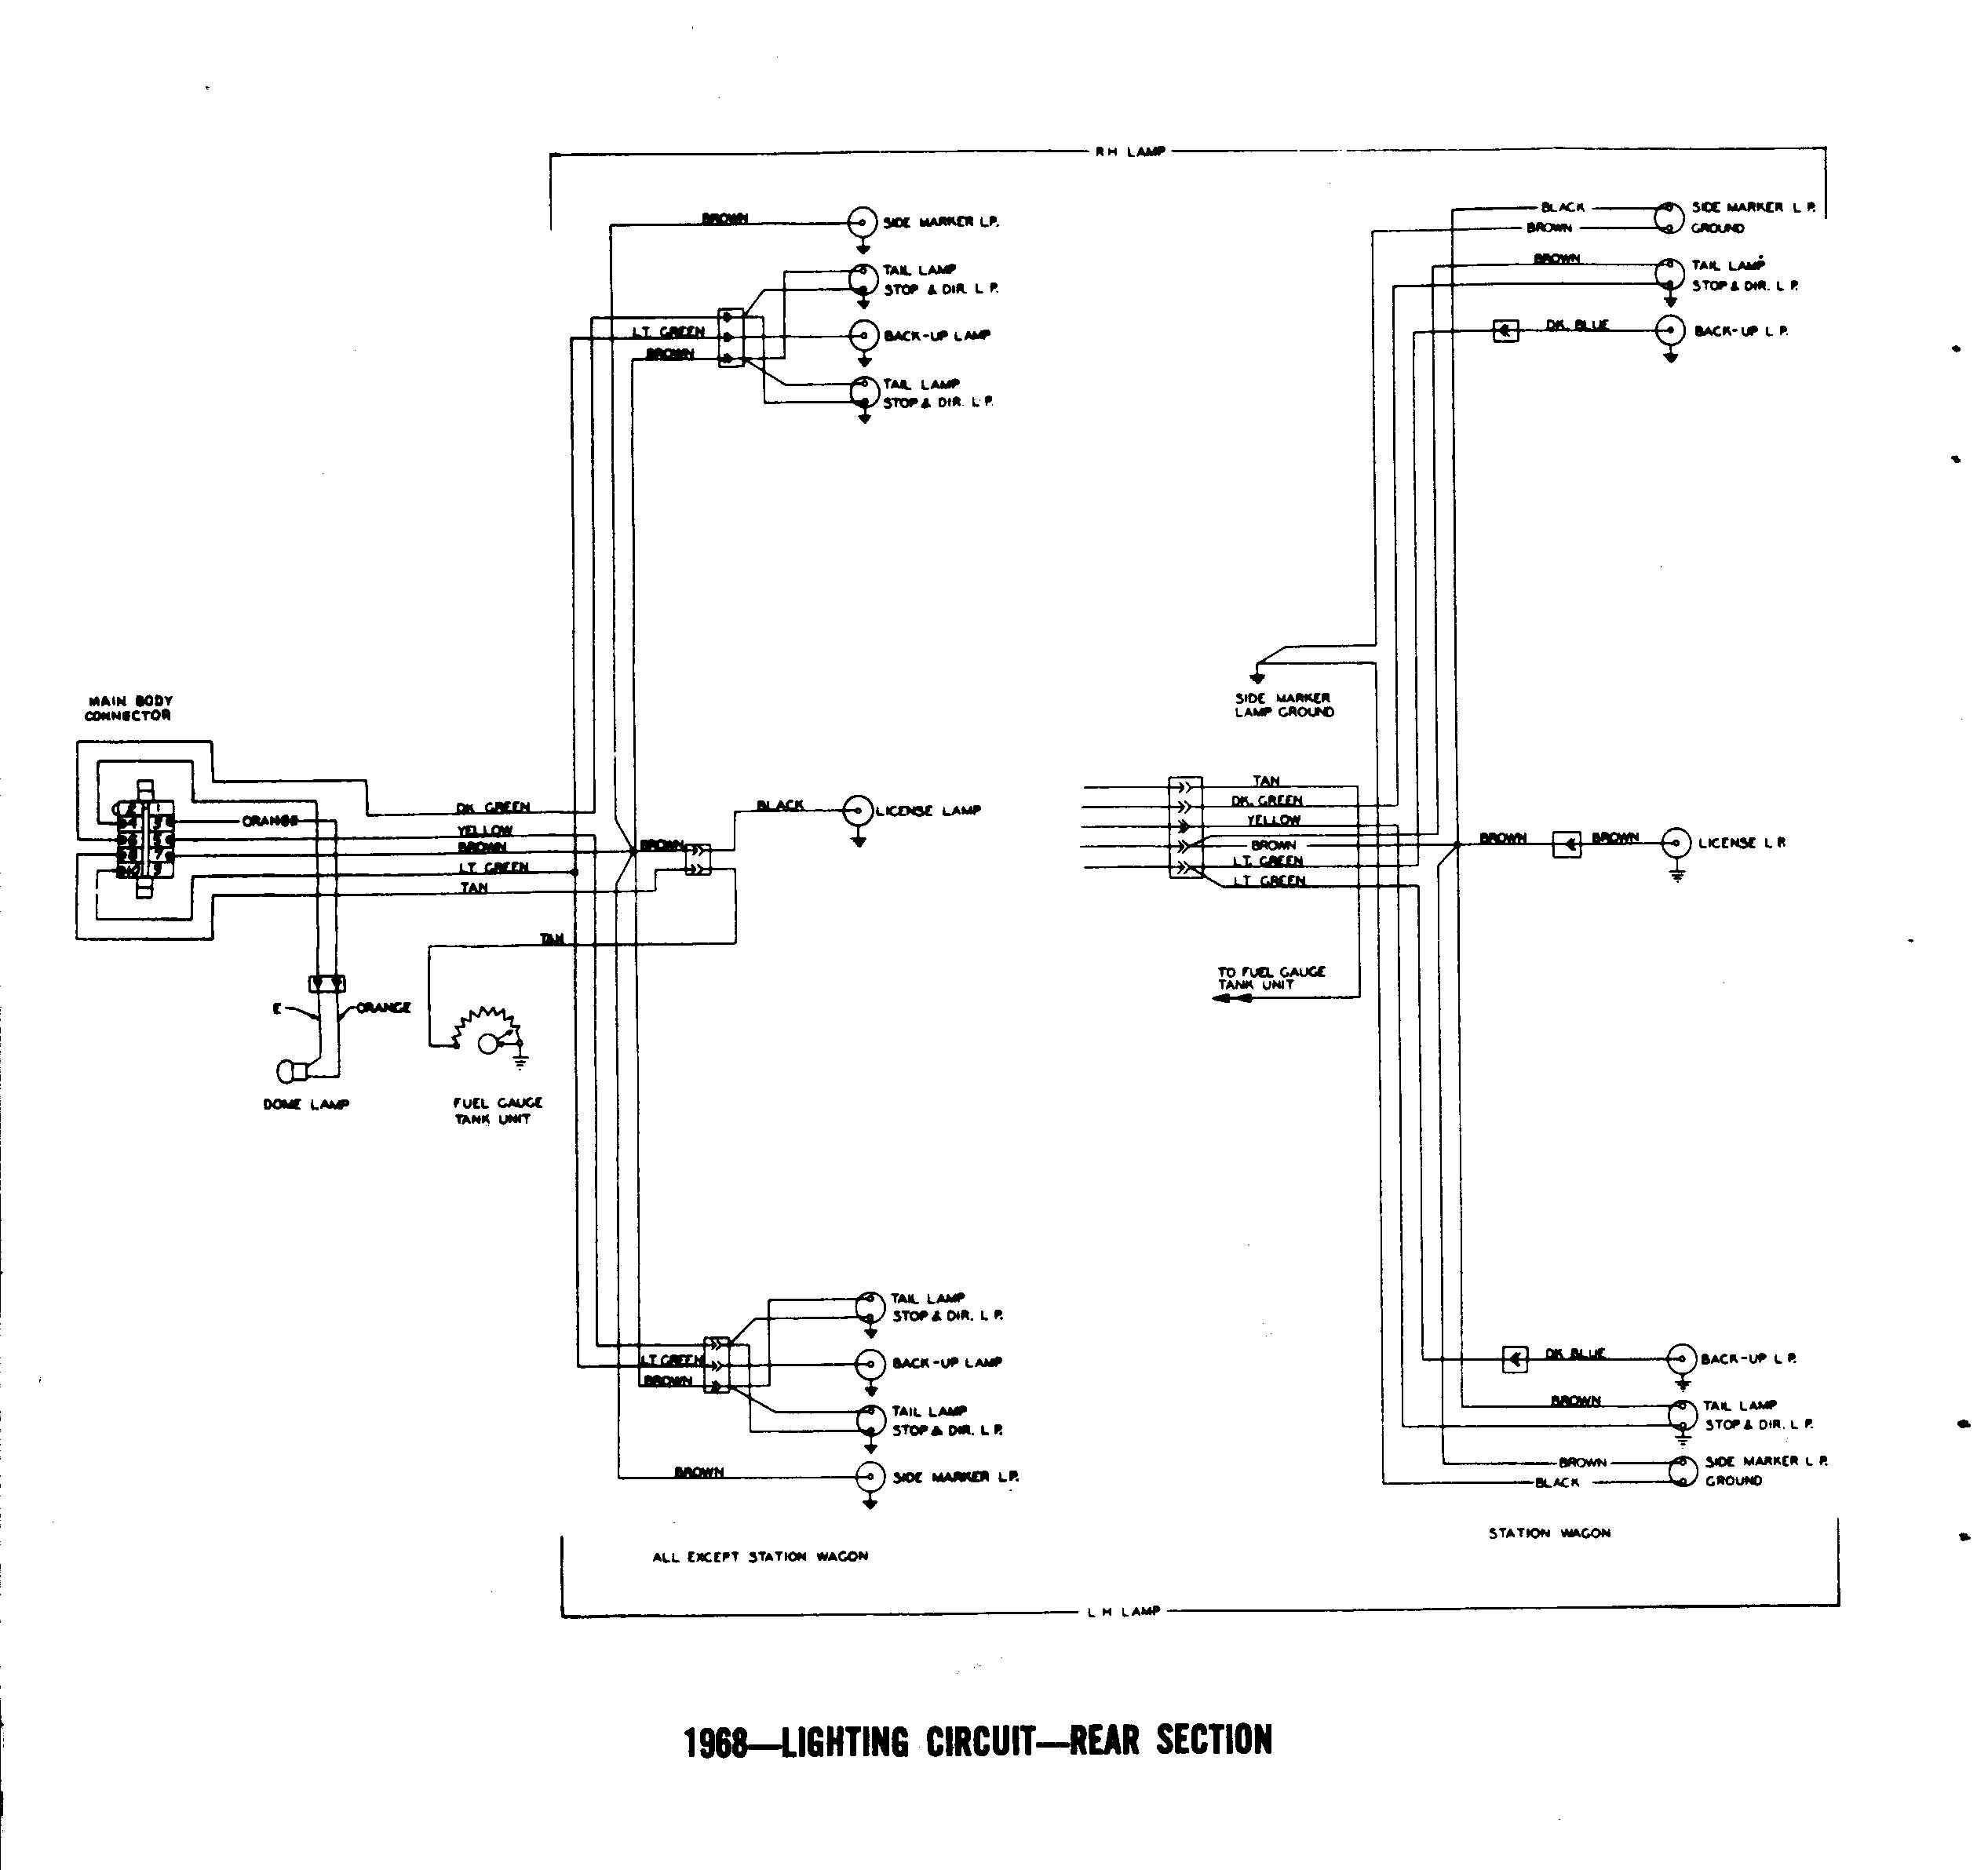 67 Gto Wiring Diagram from www.gtoforum.com